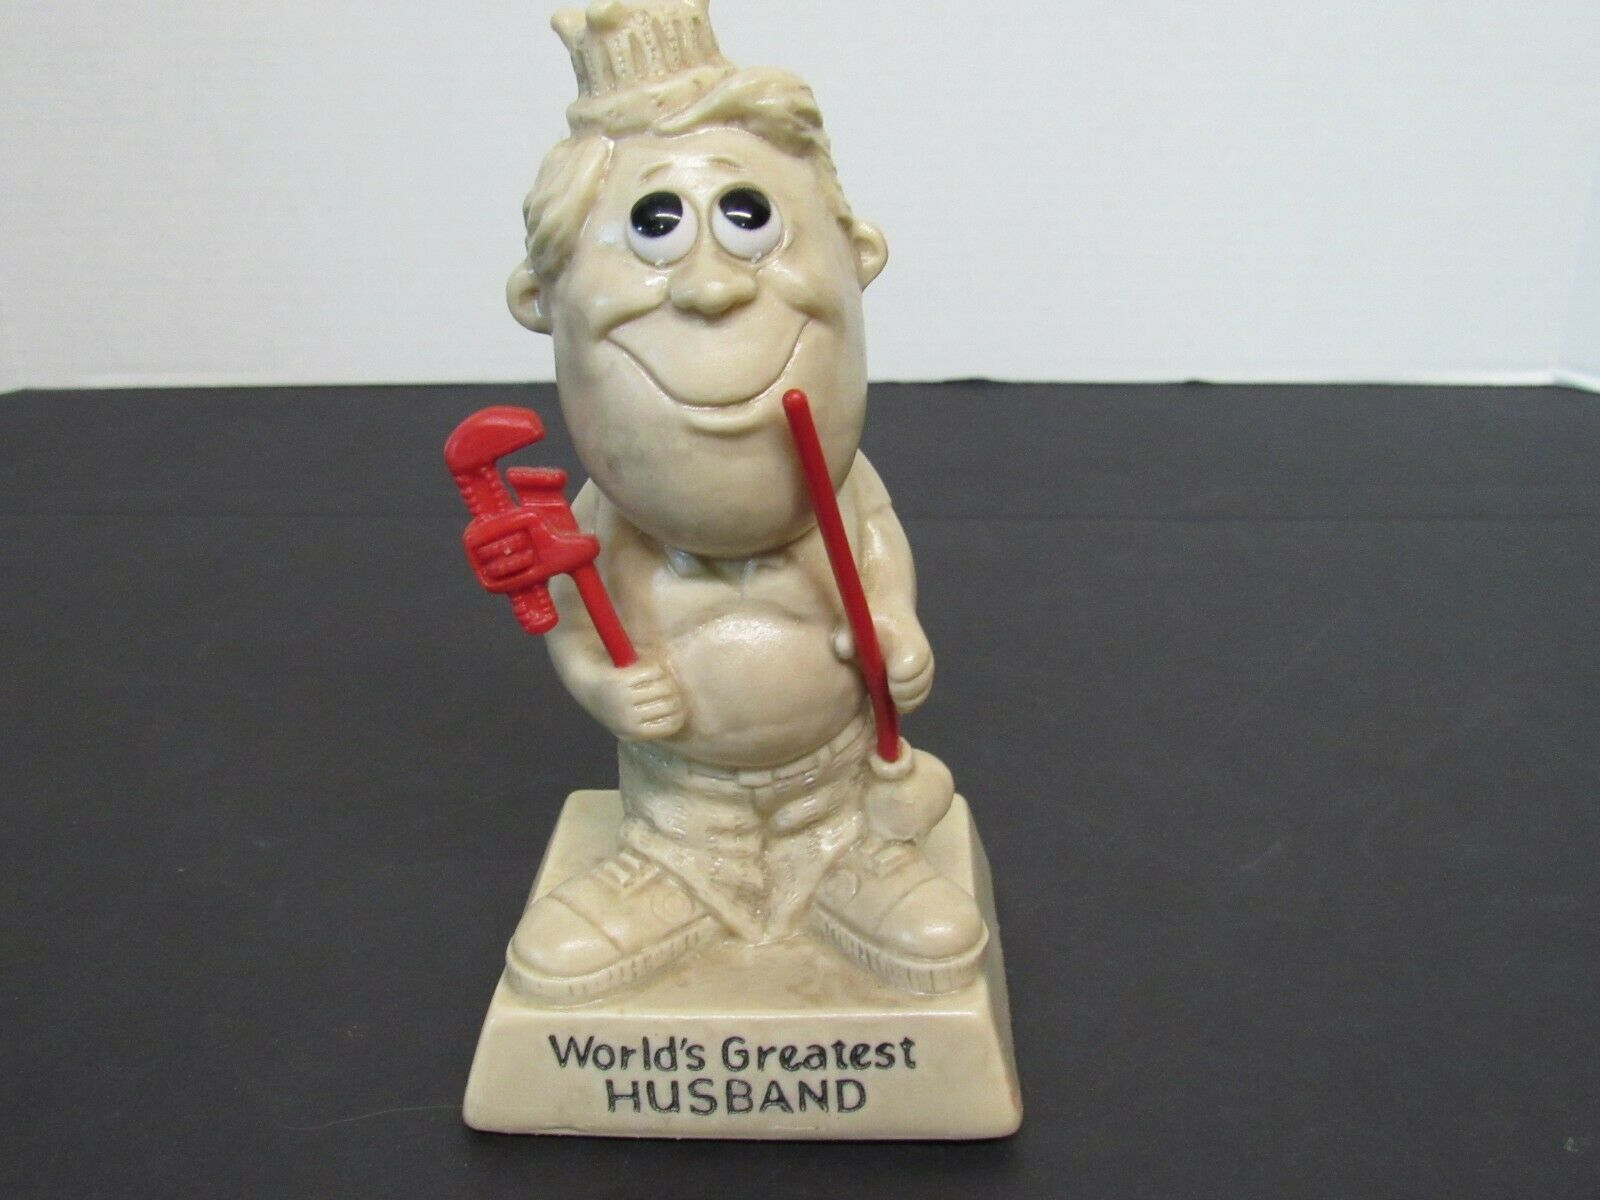 R /& W Berries World/'s Greatest Husband 1970 Sillisculpt figurine RW Berries plastic sculpture Anniversary Father/'s Day gift Husband gift